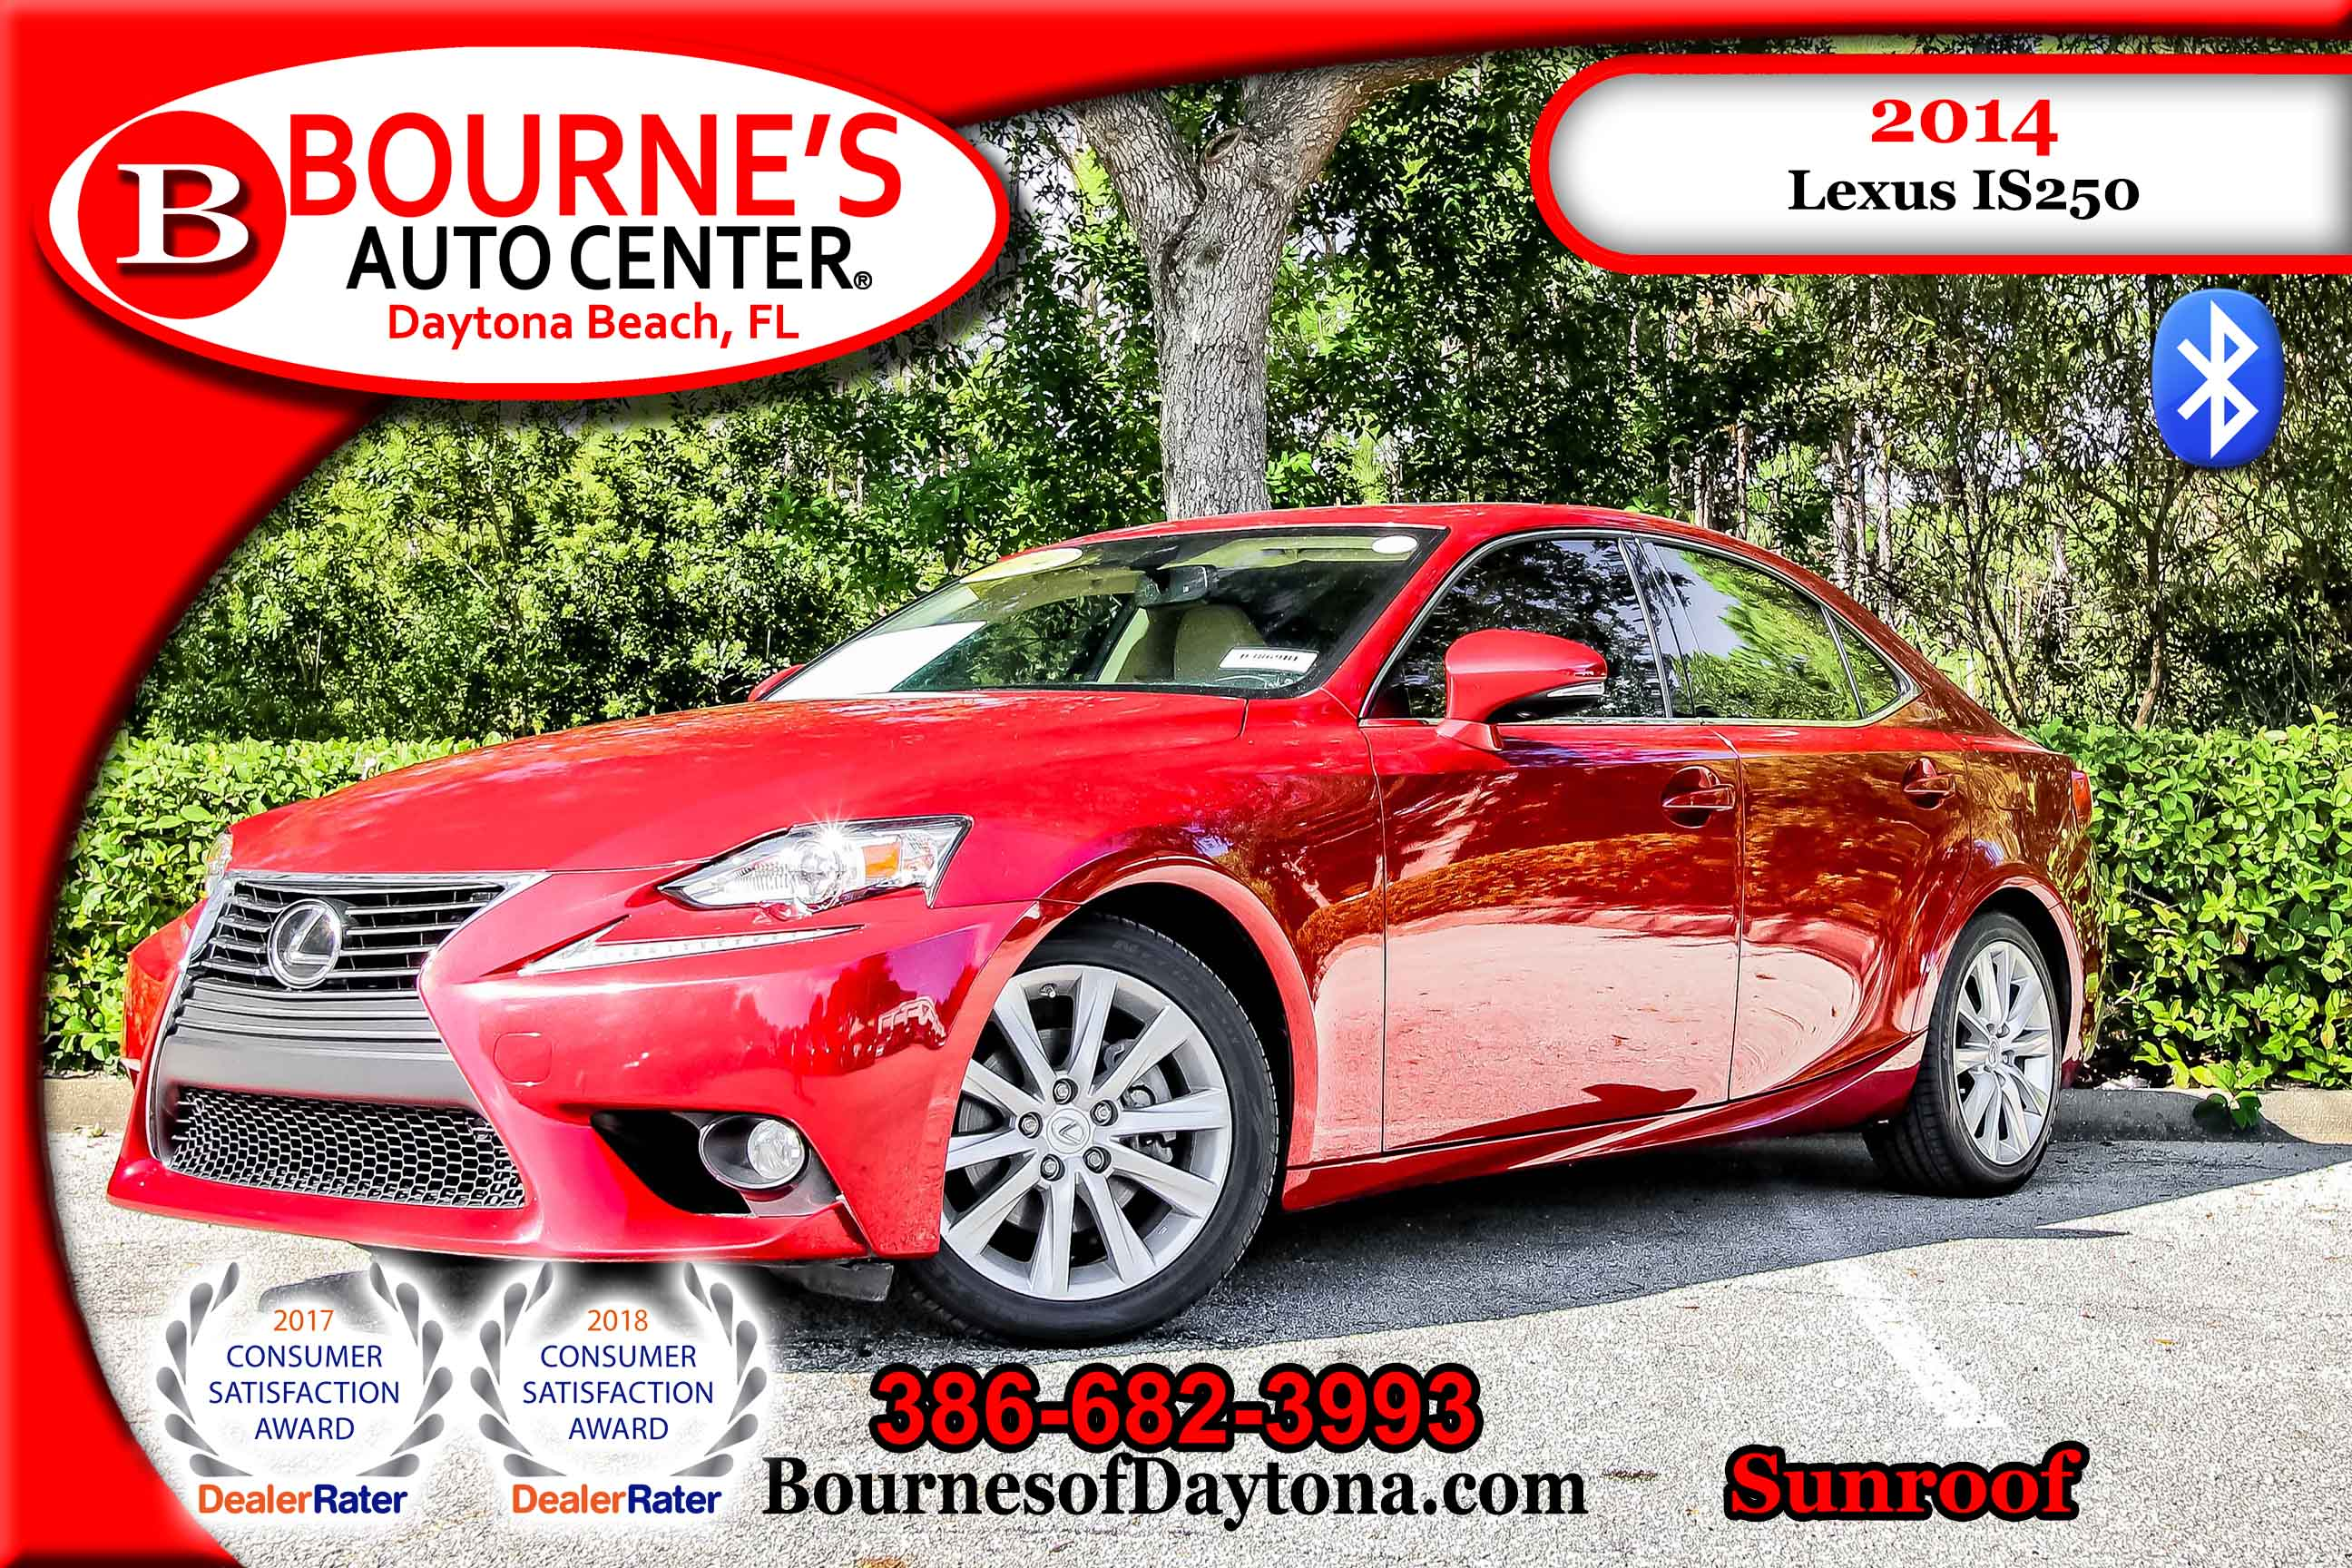 2014 LEXUS IS 250 Sunroof/ Bluetooth/ Leather Sedan